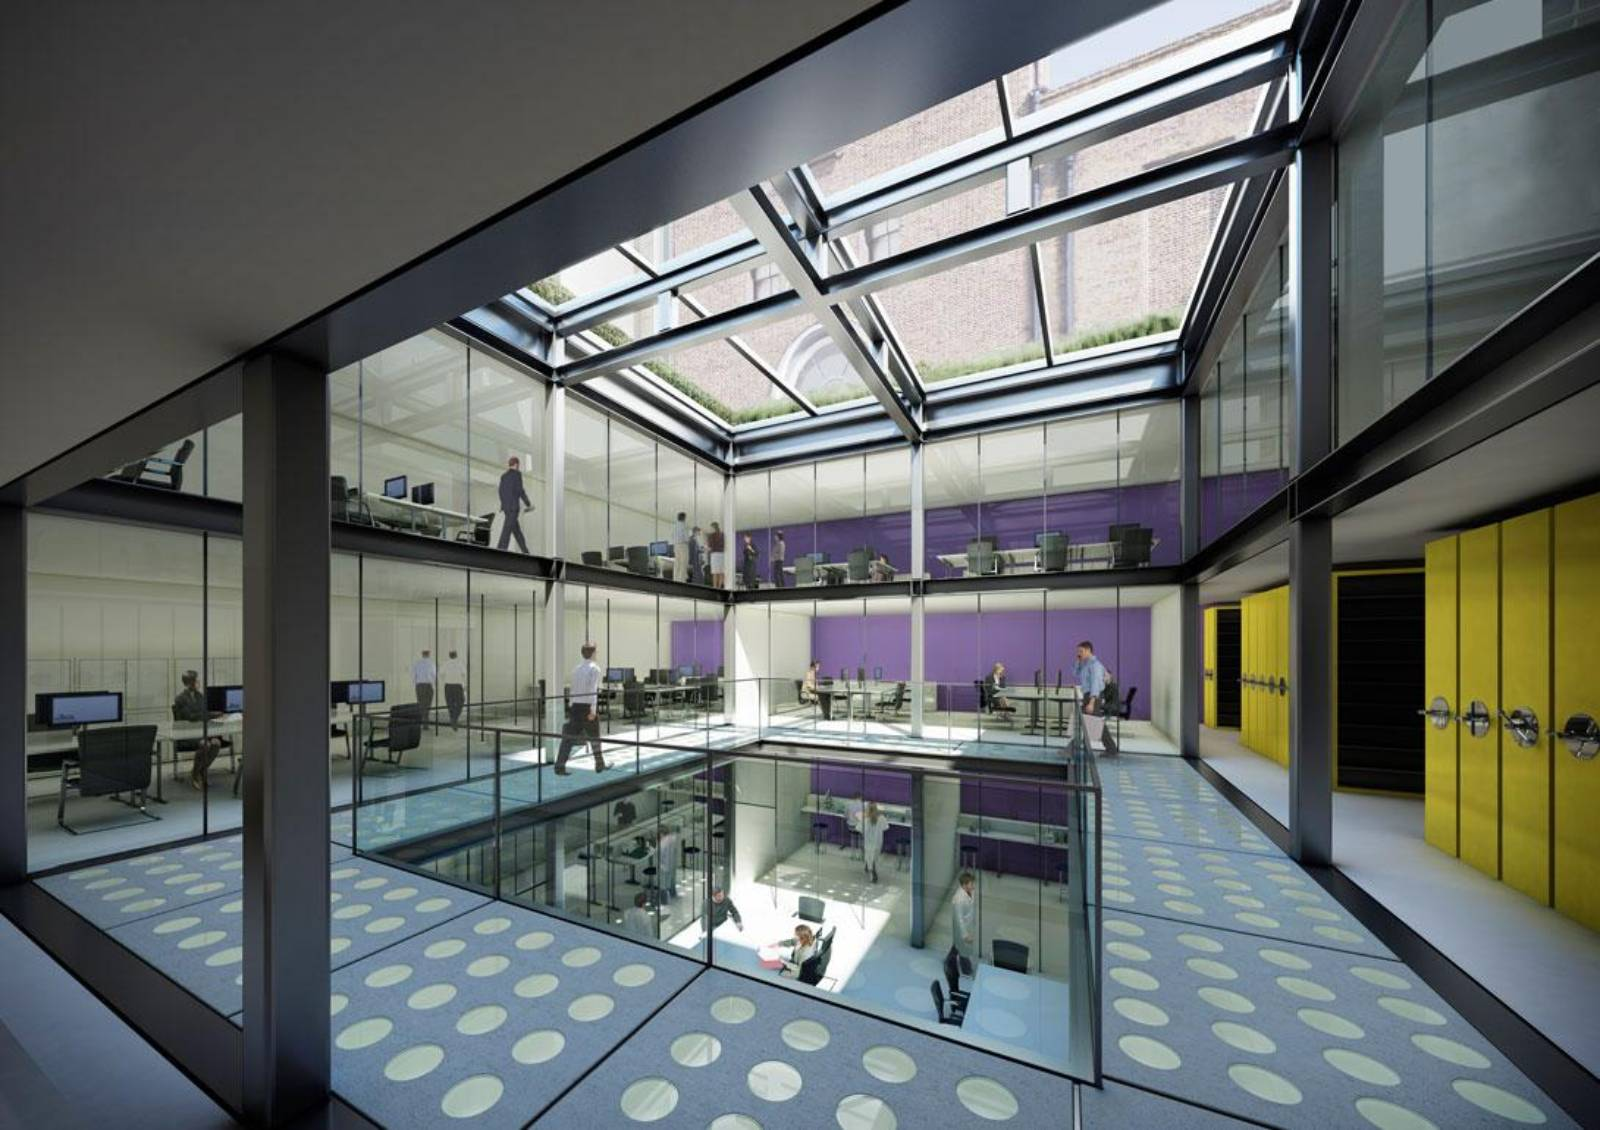 british museum extension by rogers stirk harbour partners rogers stirk harbour partners